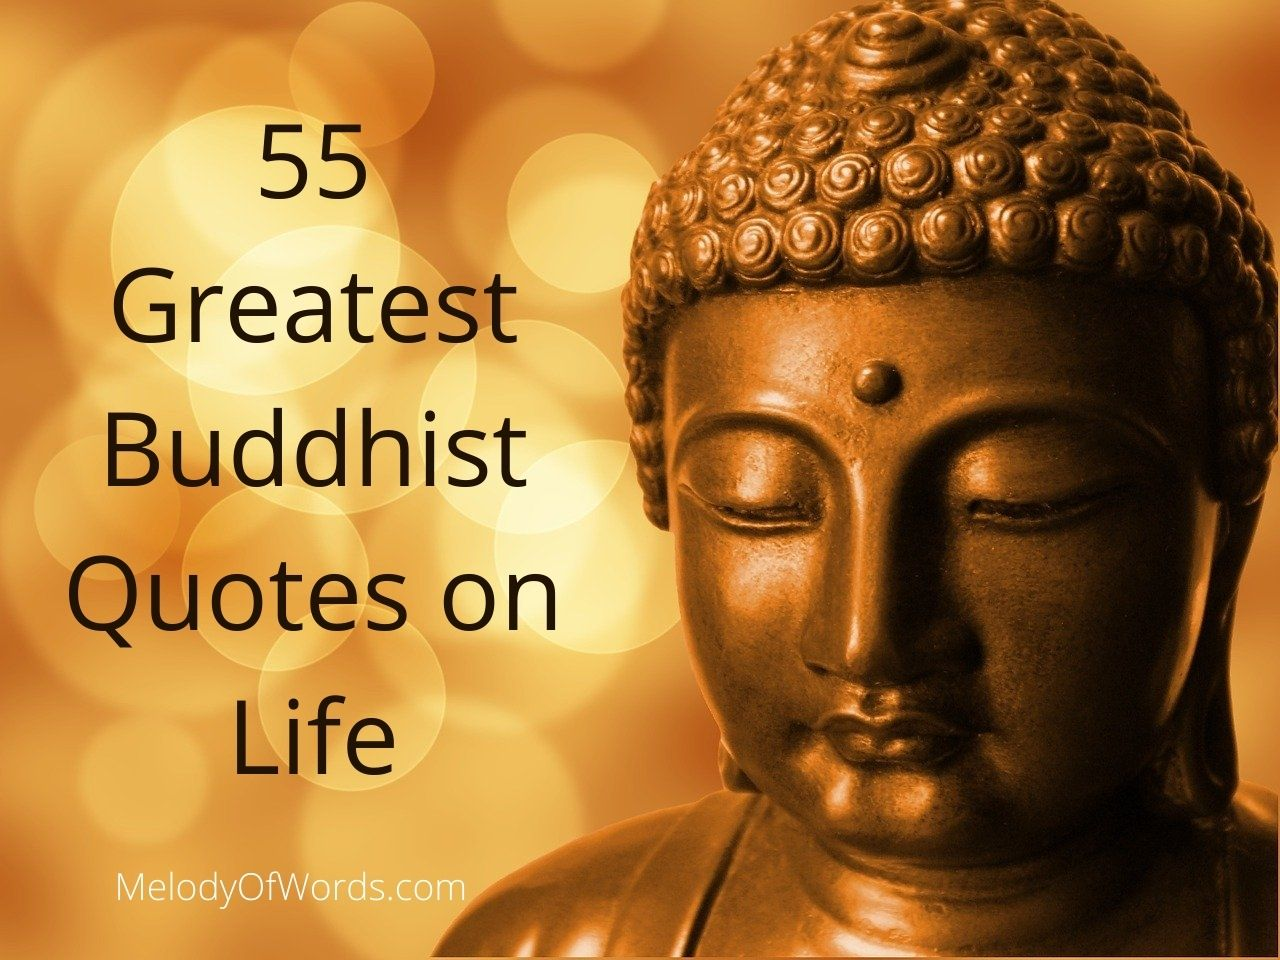 55 Greatest Buddhist Quotes on Life